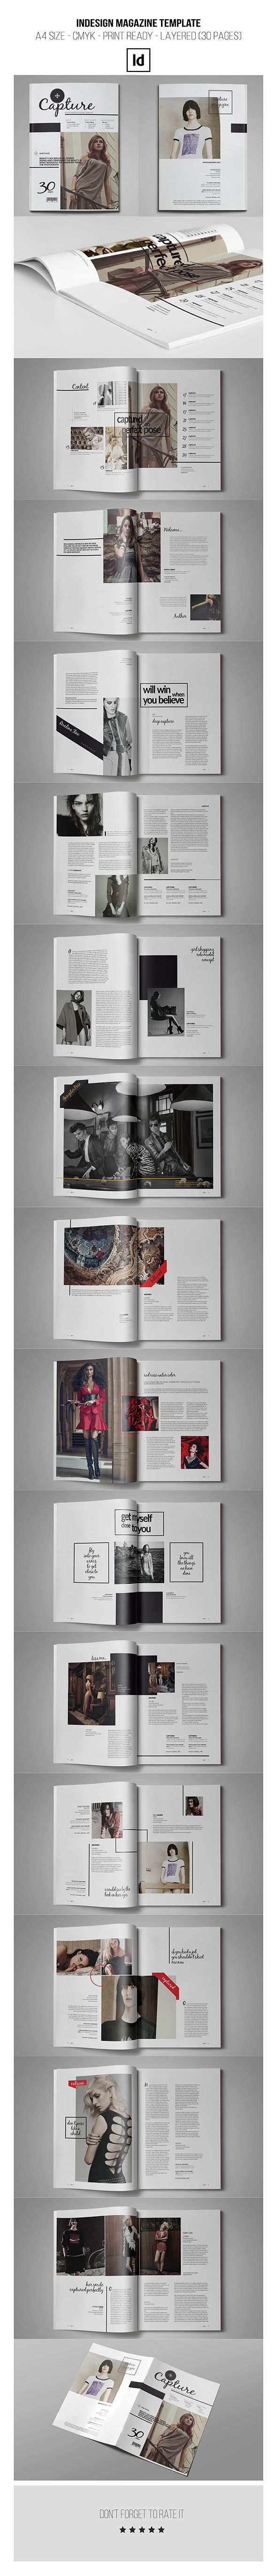 InDesign Magazine Template on Behance